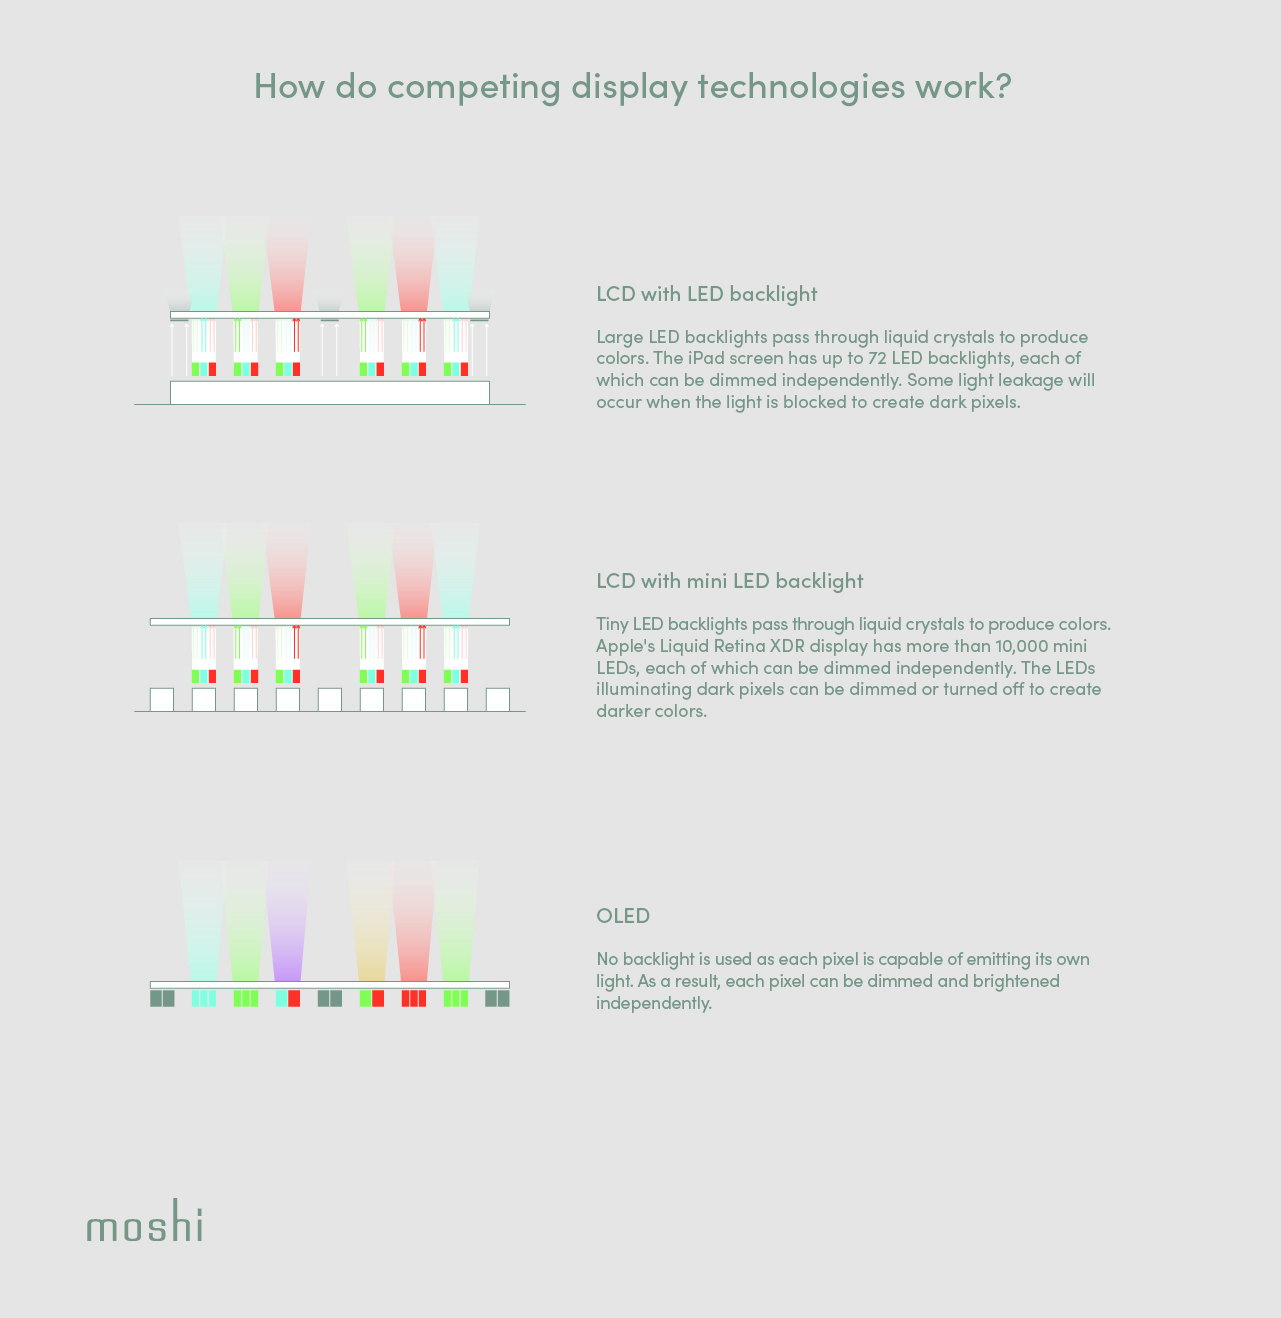 An infographic showing the difference between LCD LED, LCD Mini LED, and OLED display technologies